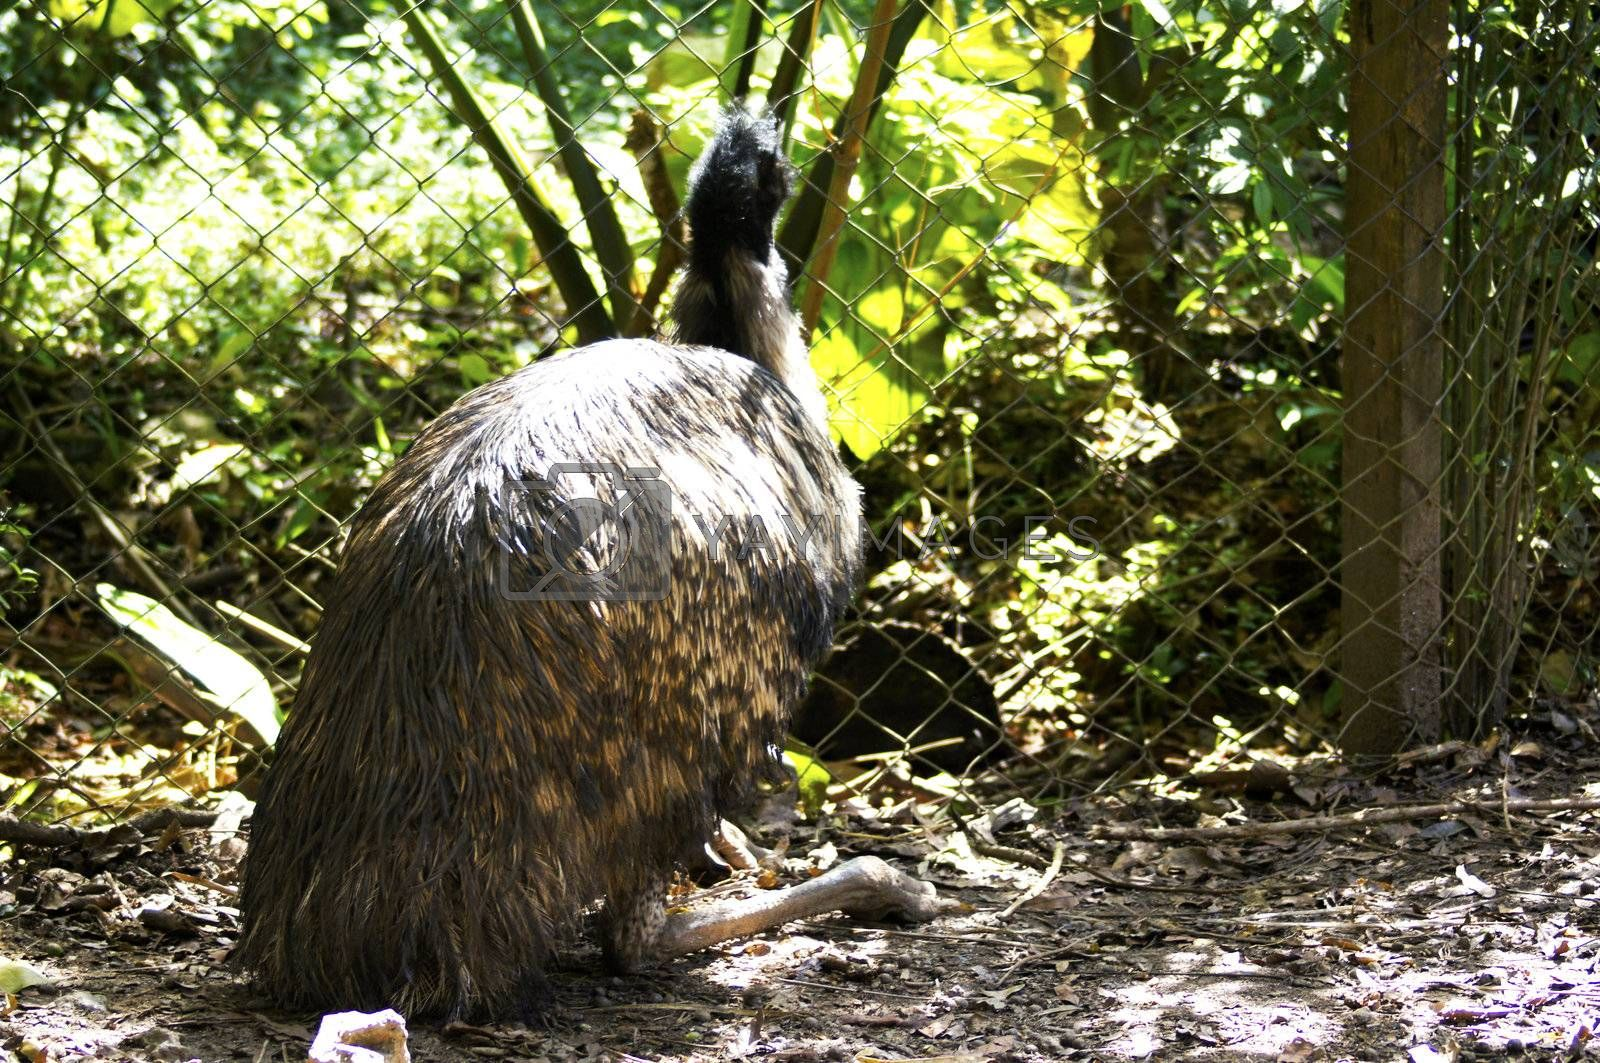 The Rhea americana, belongs to the birds ratites, which are large birds, waders and do not fly